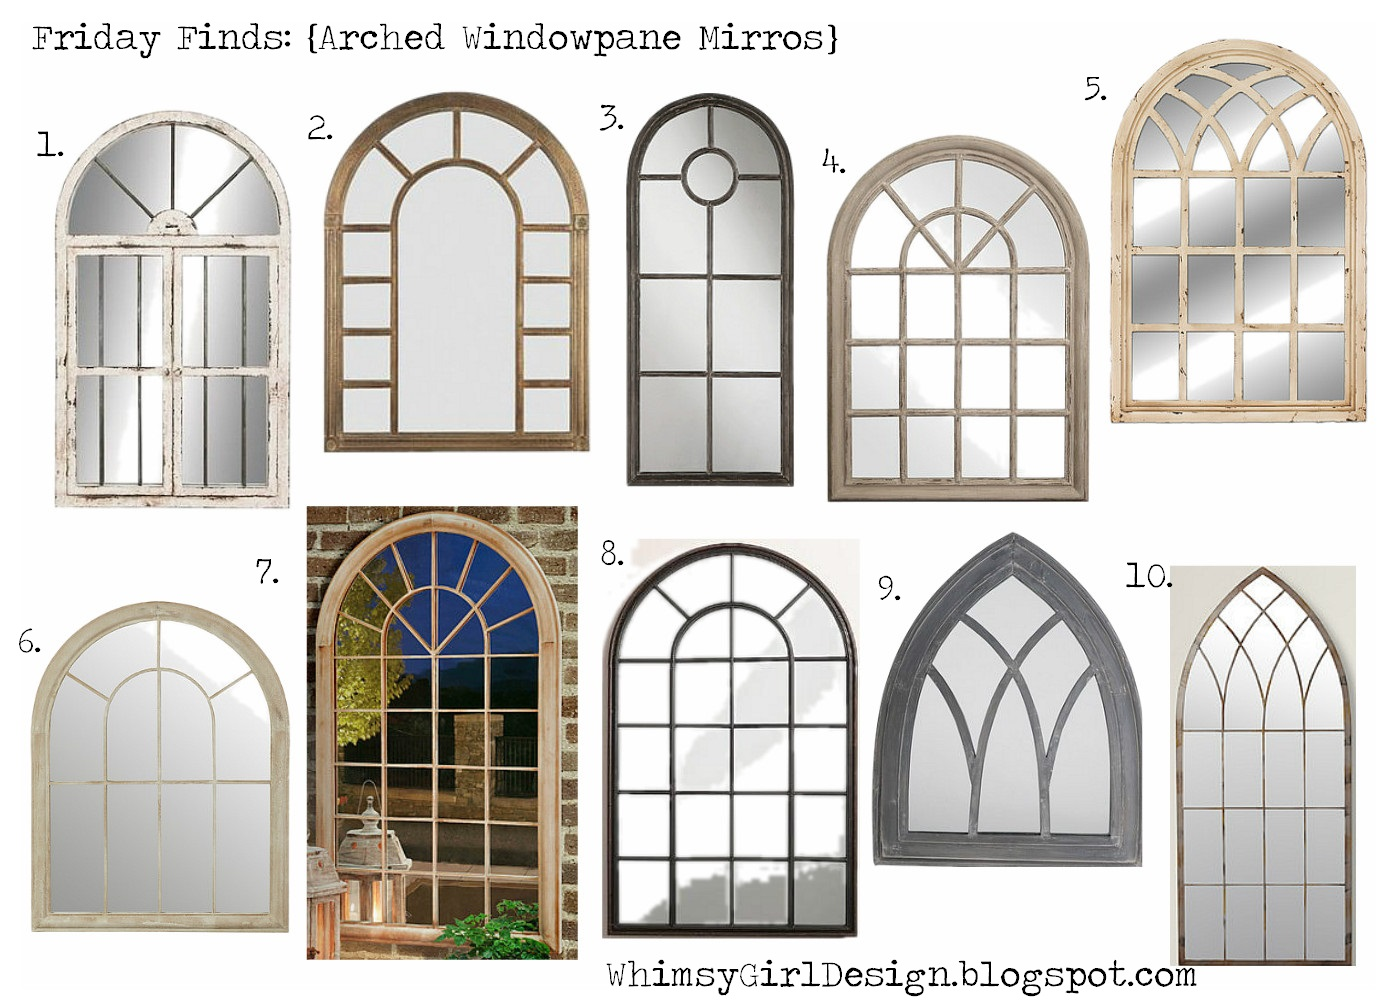 Whimsy girl friday finds arch windowpane mirrors for Arch door design